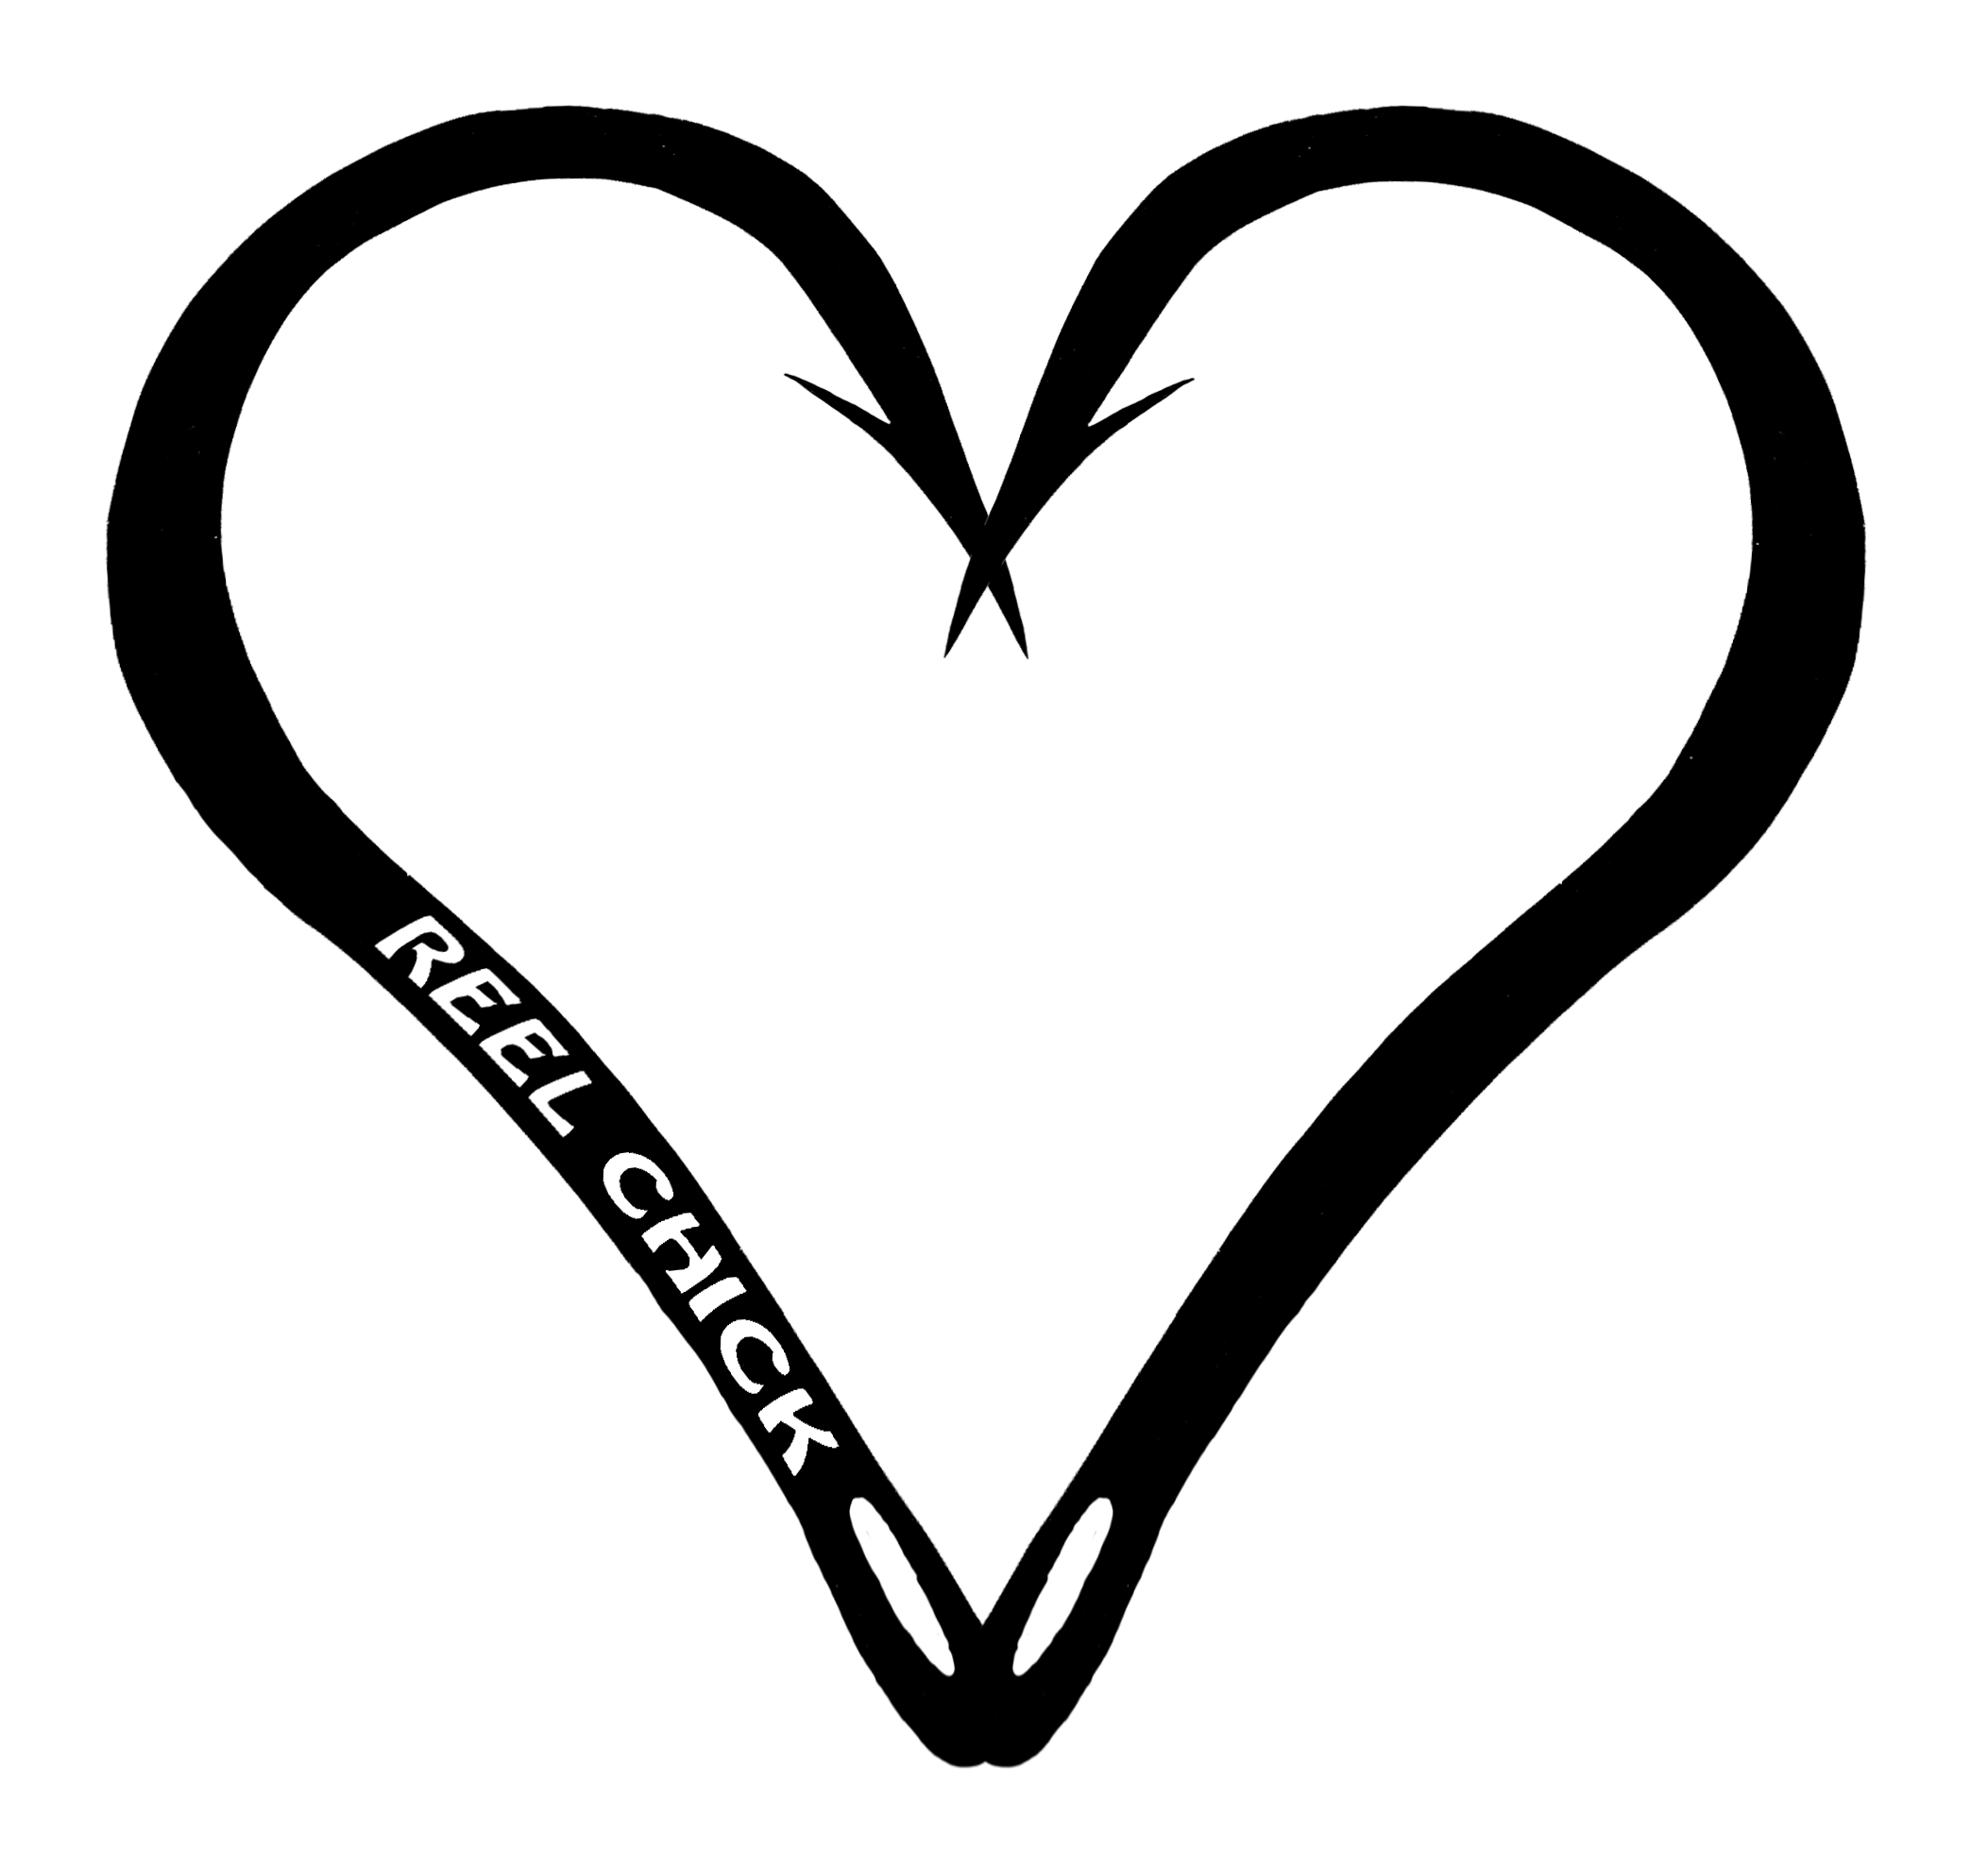 Heart shape basketball clipart black and white png royalty free stock Heart Shaped Fishing Hook - Heart Hook Fishing Decal Sticker ... png royalty free stock